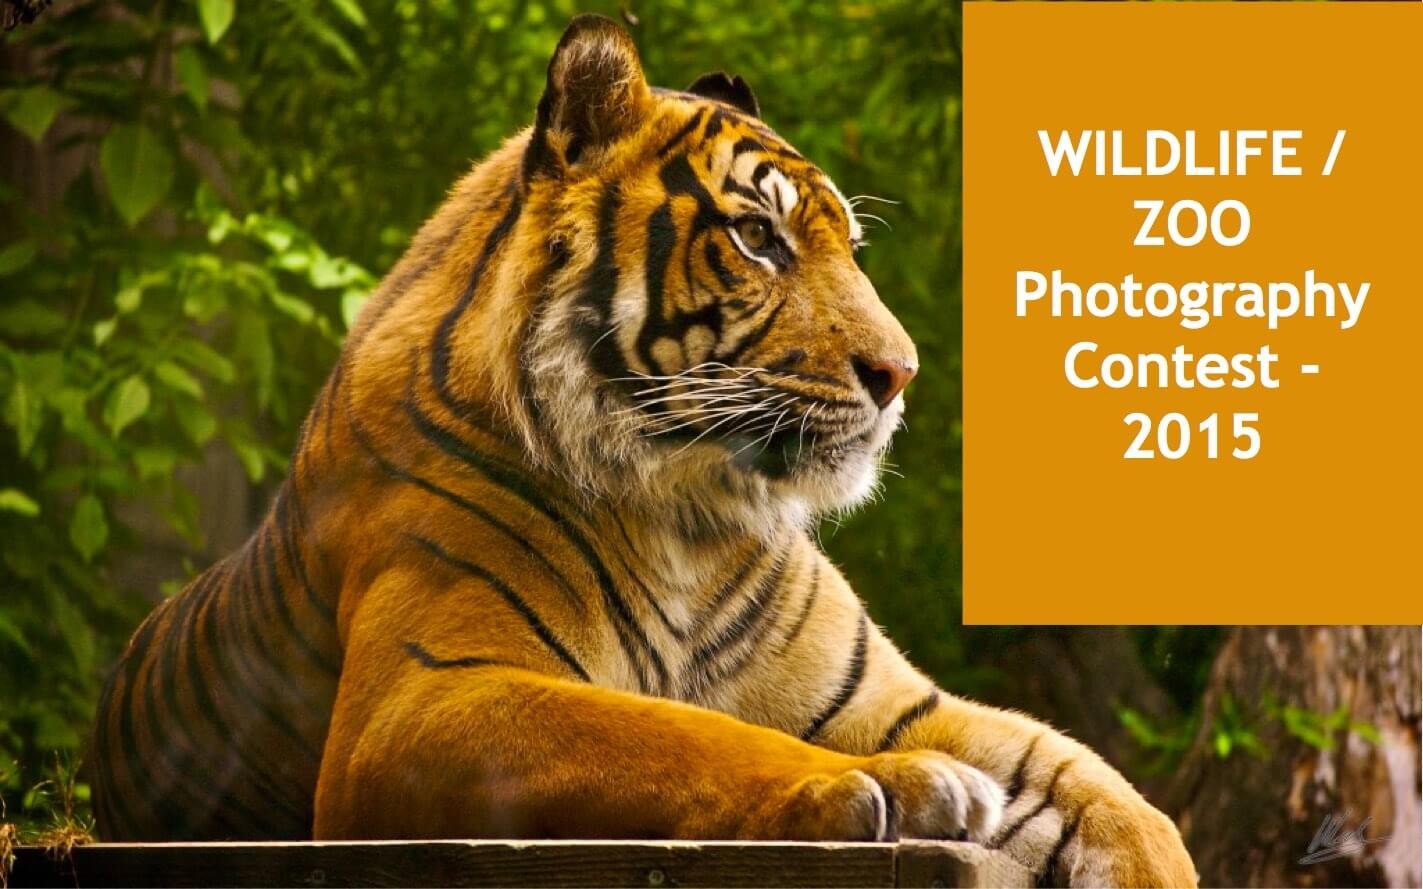 """Wildlife Zoo Photography Contest by Mysore Zoo - WildTrails of India - """"Aggregator App for Your Wildlife Trip"""" (We are an Aggregator App, bringing all of Indian wildlife & Nature resorts into one place to help YOU find your ideal destination/resort based on your personal preferences!! Will aggregate Wildlife/Nature Resorts, National parks, (bird & animal) Sanctuaries, Tiger & Elephant reserves, Organized photographic oriented wildlife tours, Camera, Lens & related equipment Rentals, Cab/Car Rentals, Photography Workshops, info about Indian Animals & birds, Tourist Guides and lot more. Currently we are covering Bandipur, Nagarhole (Kabini & Coorg), Coorg & Bird Sanctuaries close to Bangalore.) PS1: The app will be released soon and will be a paid app. Please register for our Beta program to qualify for a free app. PS2: Please be a responsible wildlife tourist; No littering, No sounds, No feeding, no getting down from the safari jeep, No calls, Phones to Silent mode or Airplane mode or Switch off. Remember we are visiting their home and when we are there, let's follow their rules."""